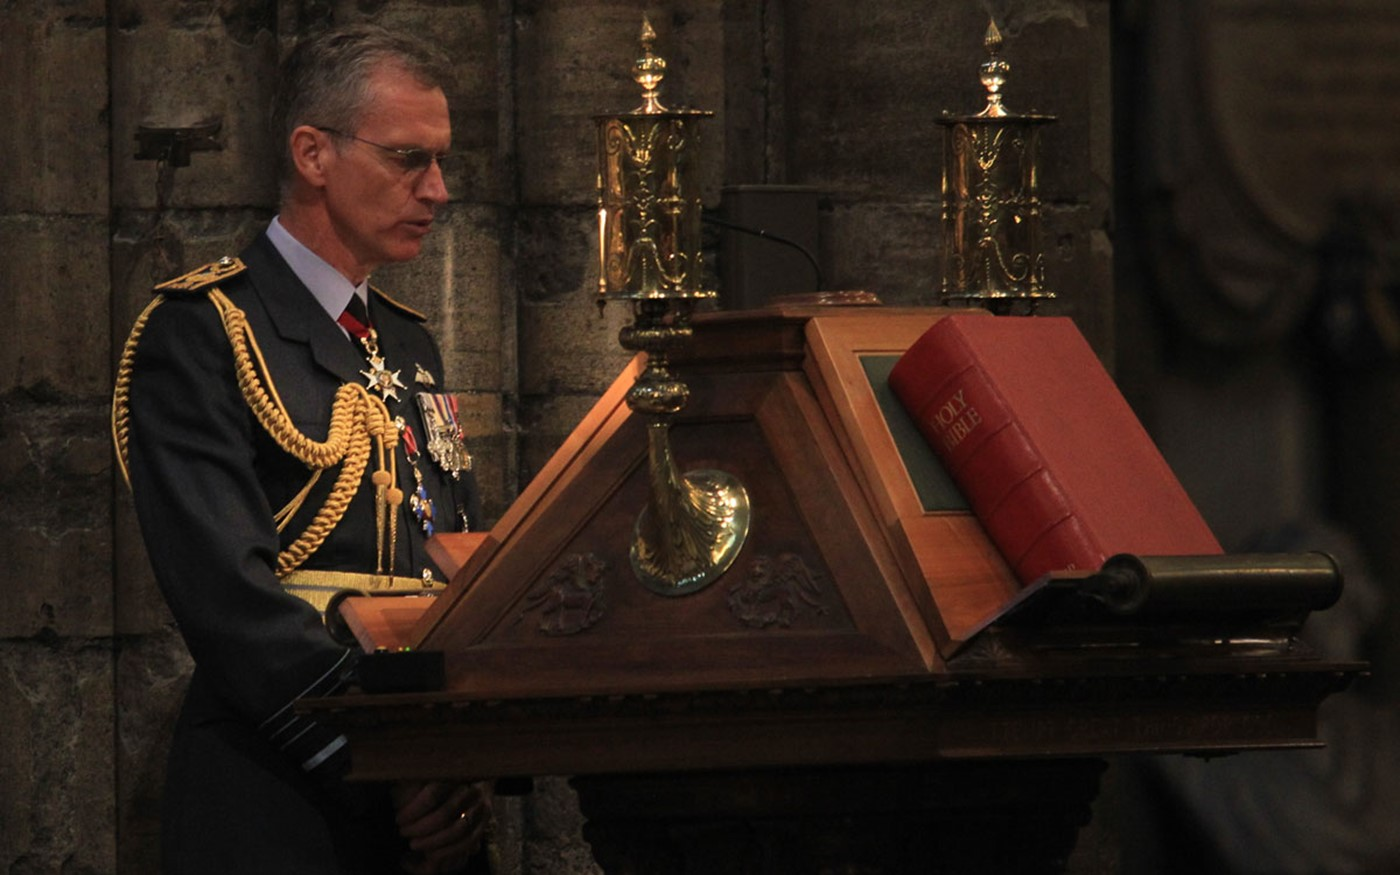 Air Chief Marshal Sir Stephen Hillier reads St Mark 14: 3-11 from the Great Lectern